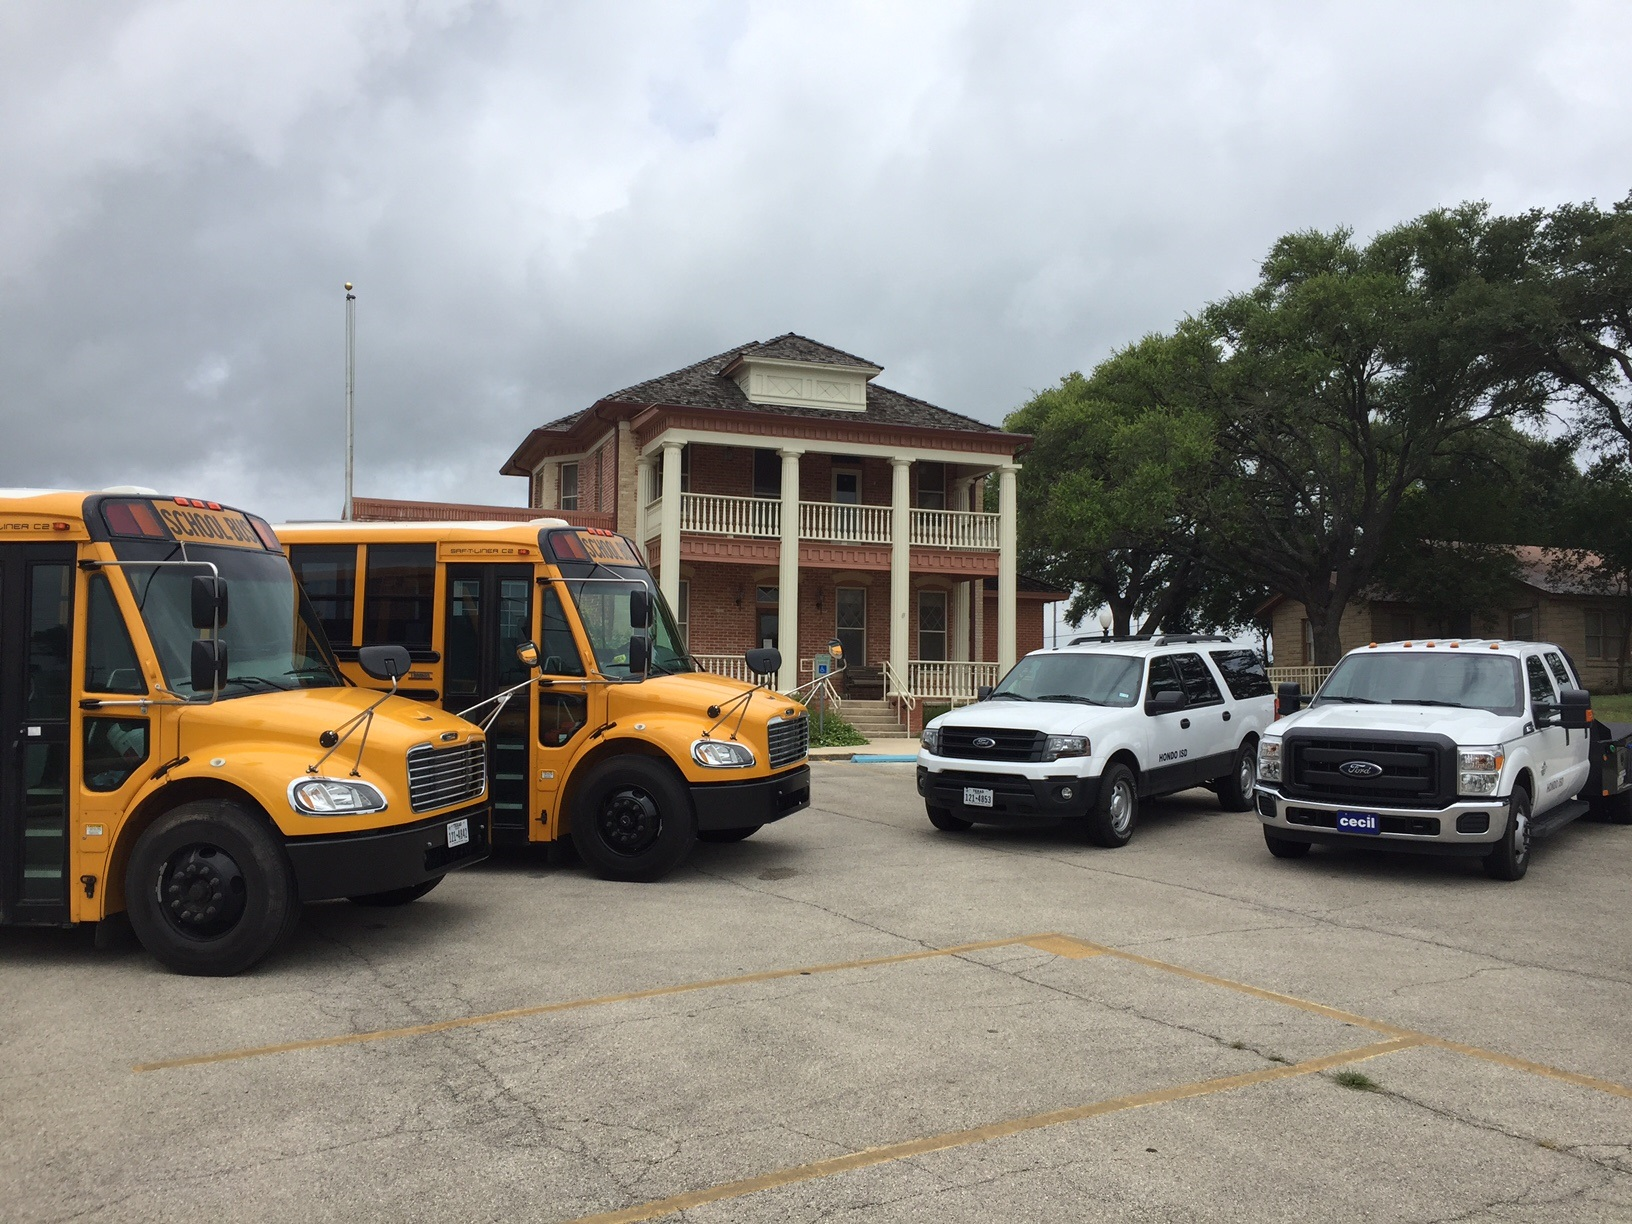 HISD vehicle